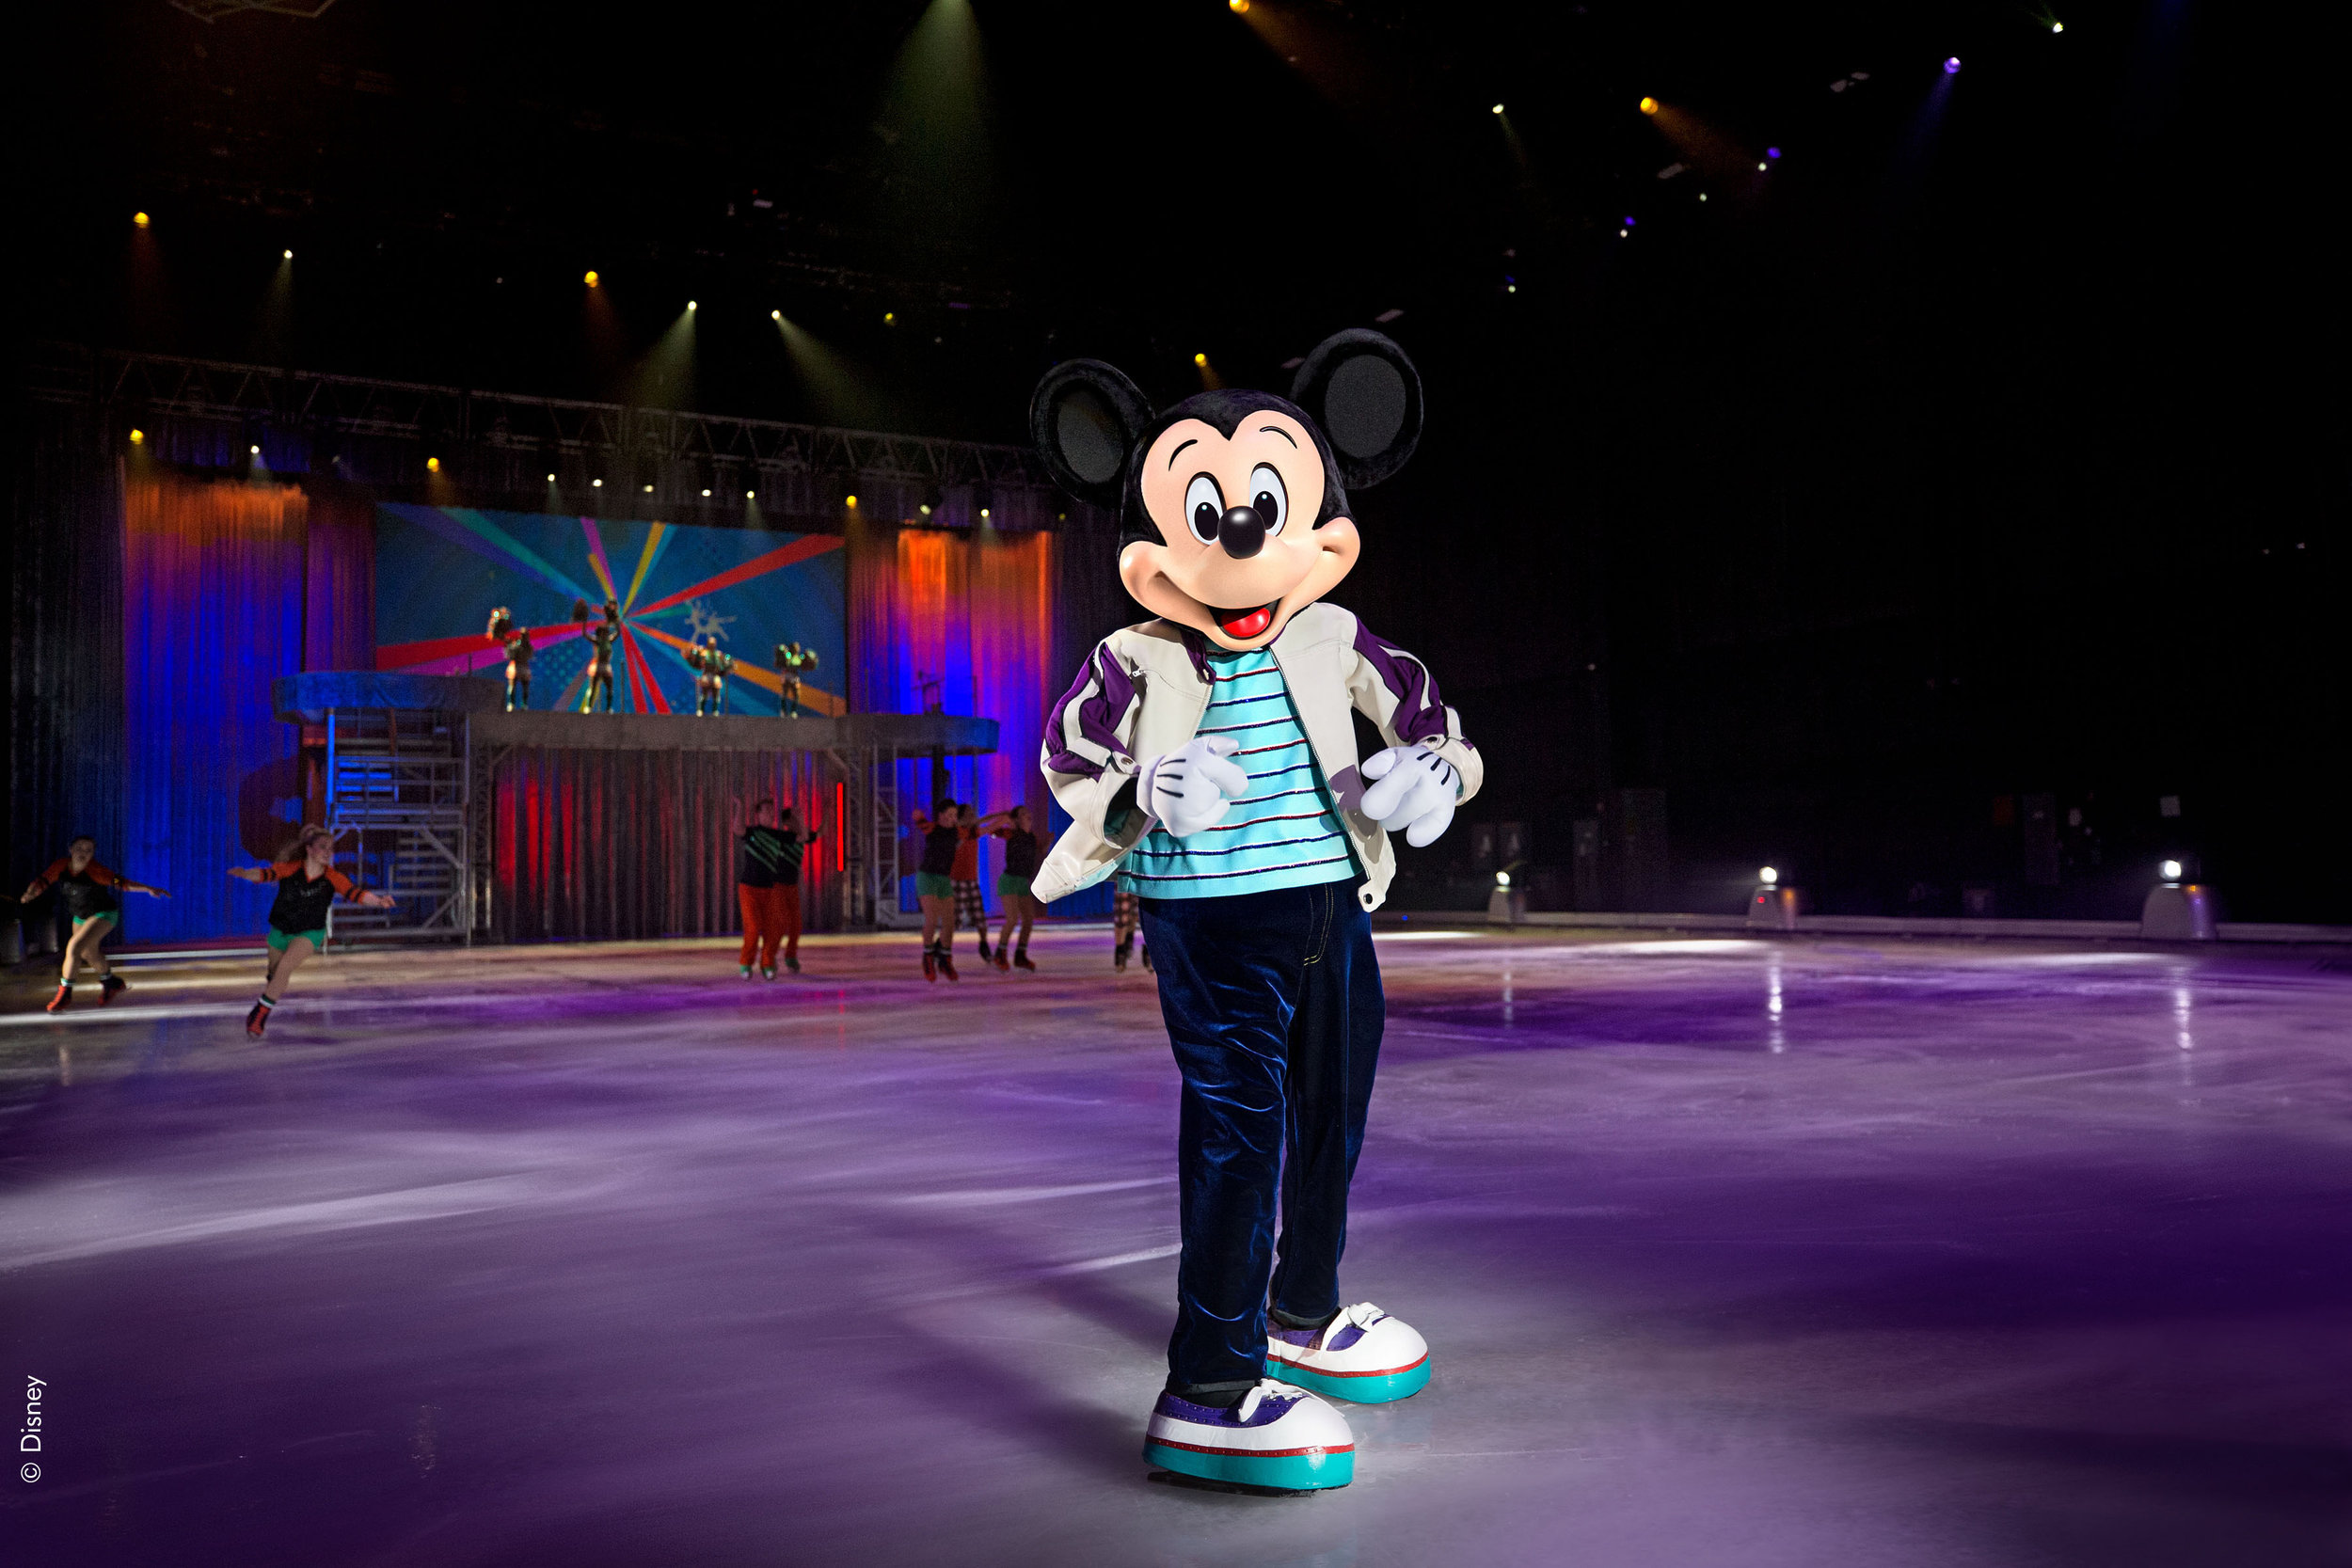 Disney on Ice 2019 - Take a trip down memory lane with Mickey and friends at this year's Disney on Ice spectacular! We've been going for the past 5 years and it is one of our favourite days out ever!! Get the kids dressed up as their favourite Disney character and come join in the magic!When: 17-21 July at Sydney's Qudos Bank Arena (visit Disneyonice.com.au for details of more dates and venues nationwide)Tickets for Wollongong are through Ticketmaster: www.Ticketmaster.com.au/DisneyOnIceTickets for Perth, Adelaide, Canberra, Brisbane, Melbourne, Newcastle & Sydney are through Ticketek: www.Ticketek.com.au/DisneyOnIce